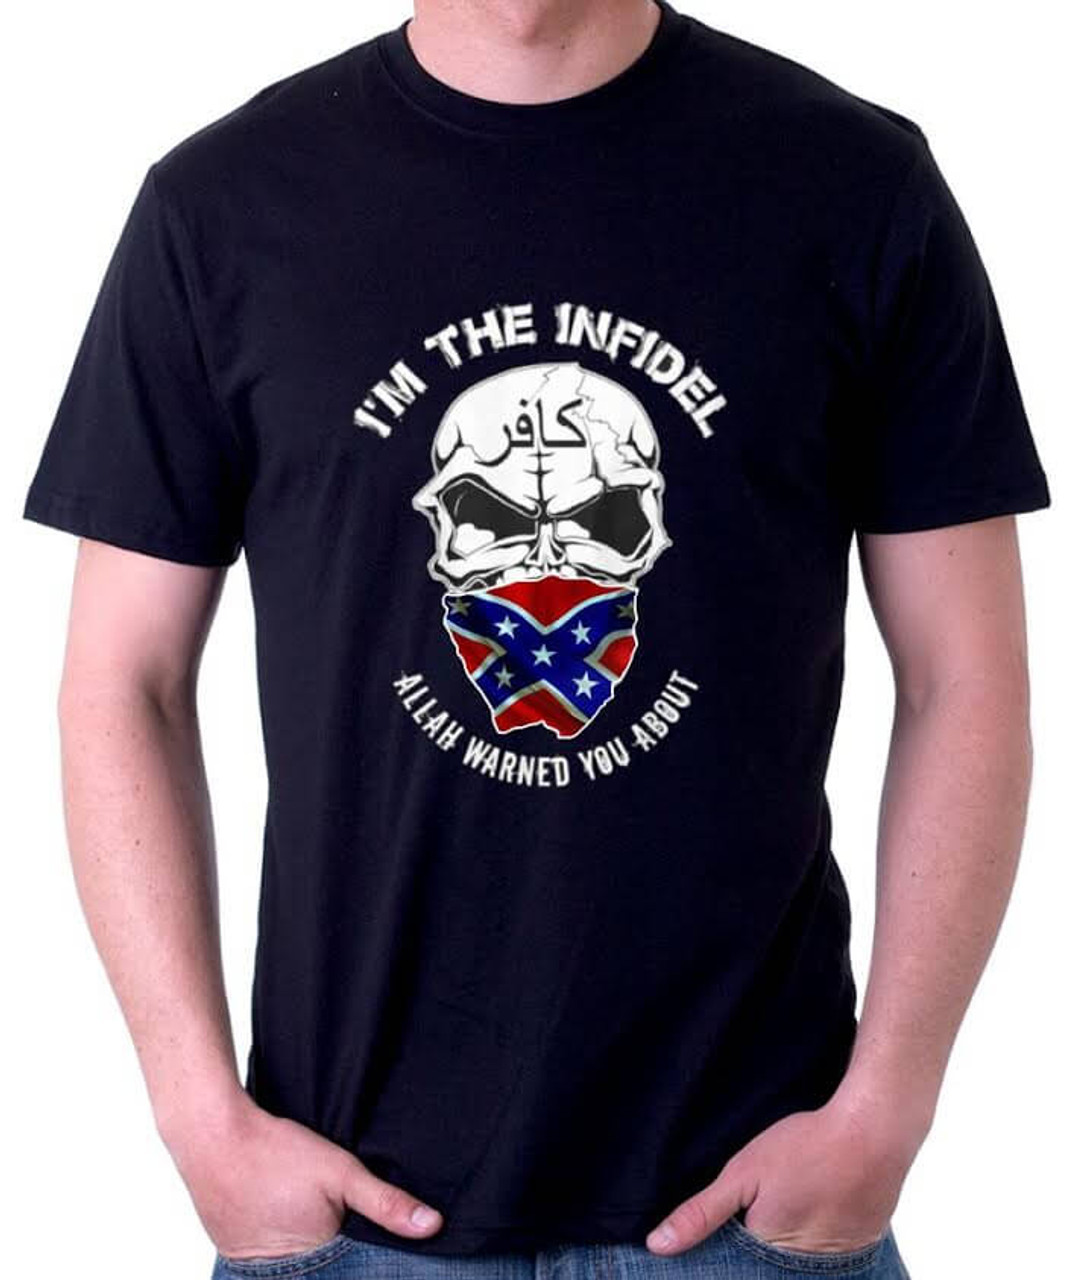 I'M THE INFIDEL ALLAH WARNED YOU ABOUT Rebel Flag T-Shirt